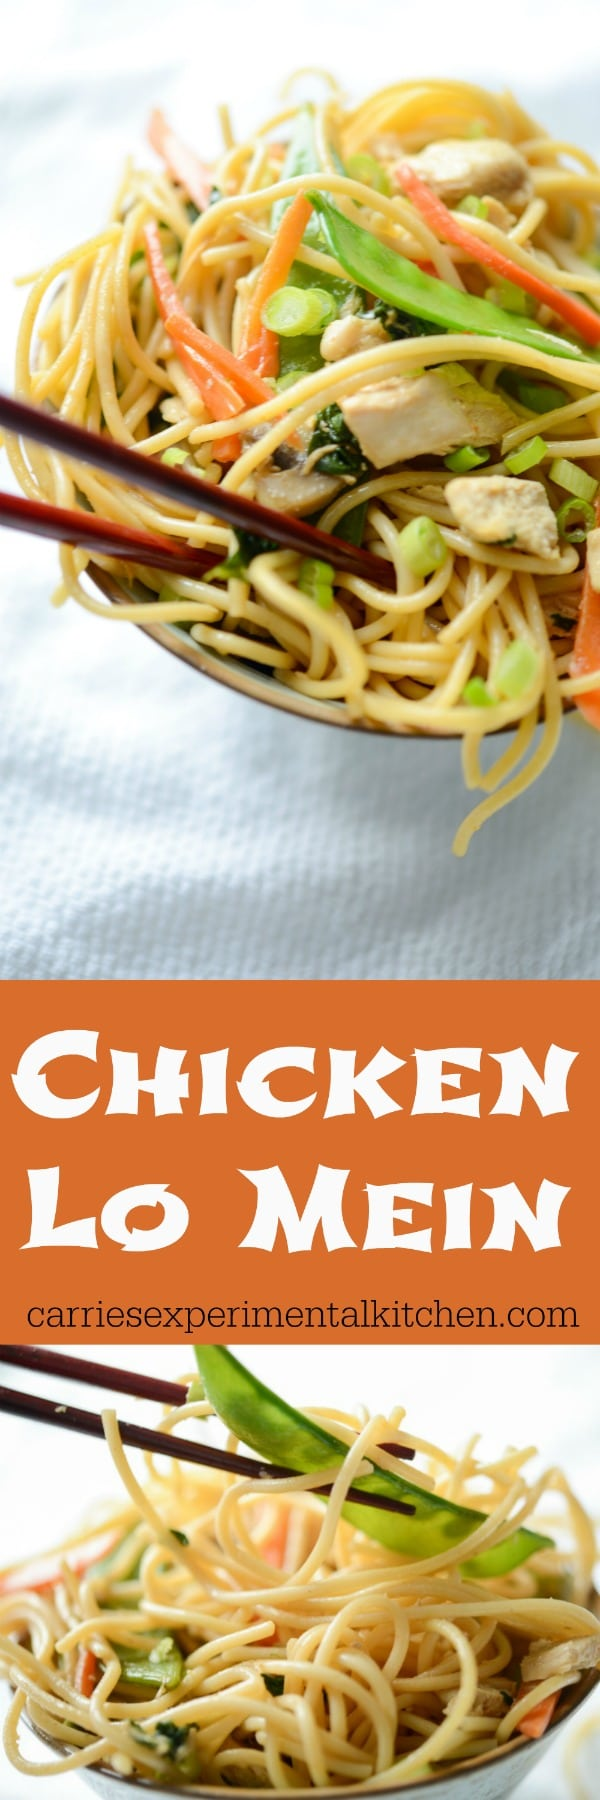 Chicken Lo Mein made with cooked chicken, spaghetti, and vegetables in an Asian soy sauce is a tasty, skillet weeknight meal that's ready in 30 minutes. #pasta #chicken #asian #chinesefood #chinesenewyear #noodles